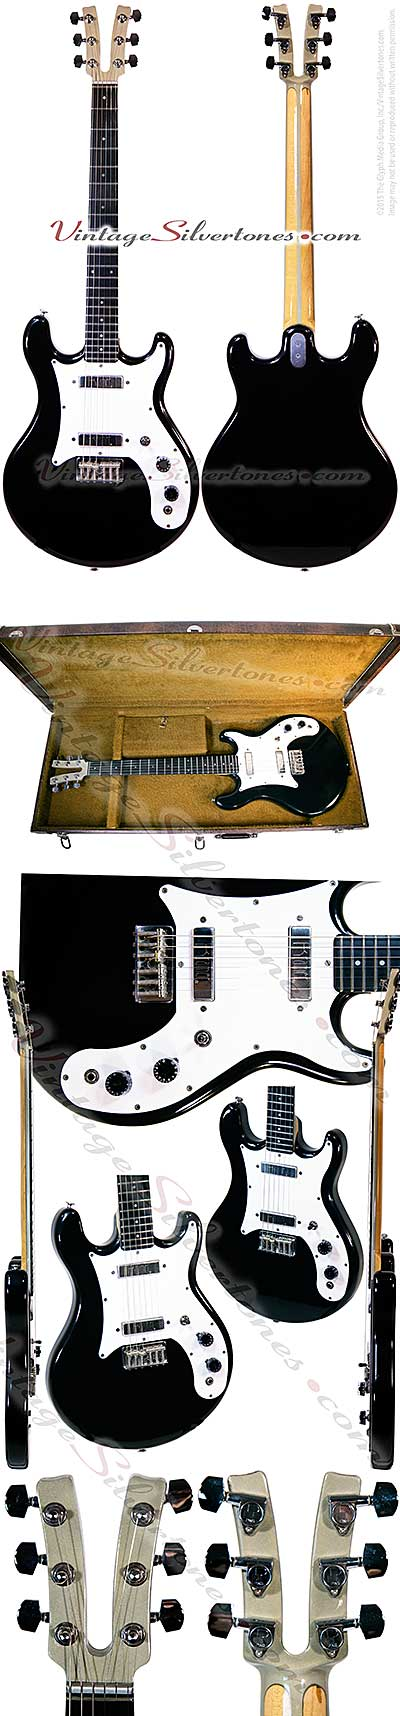 Kramer 250g-Neptune, NJ 2 pickup, electric guitar, 1977, black, white pickguard, double cutaway